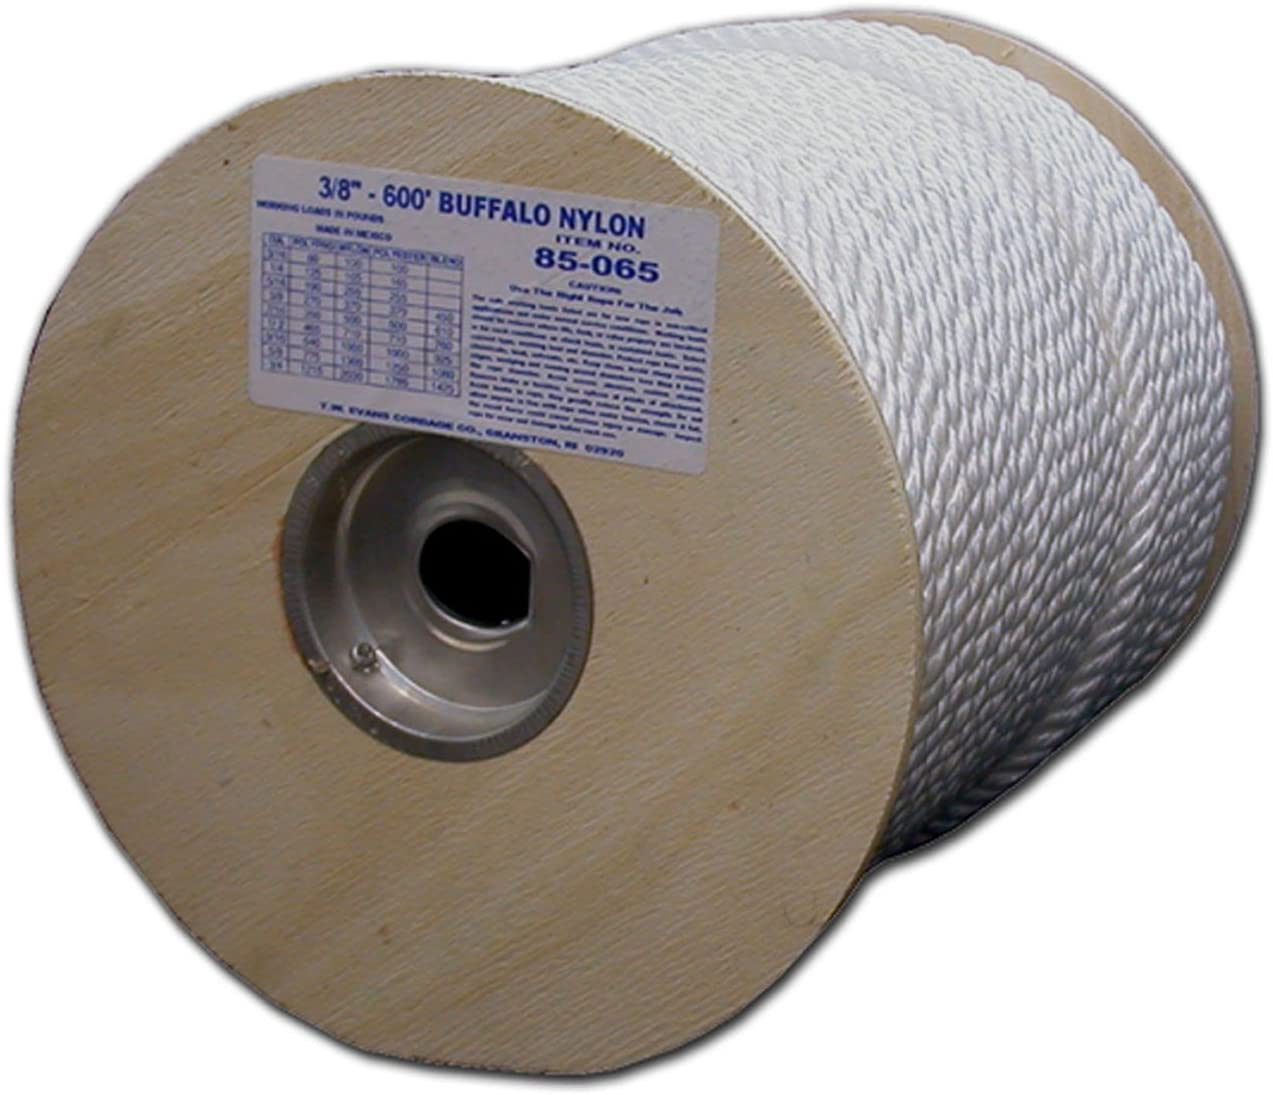 T.W Evans Cordage 85-092 1-Inch by 300-Feet Twisted Nylon Rope T.W Evans Cordage Co.